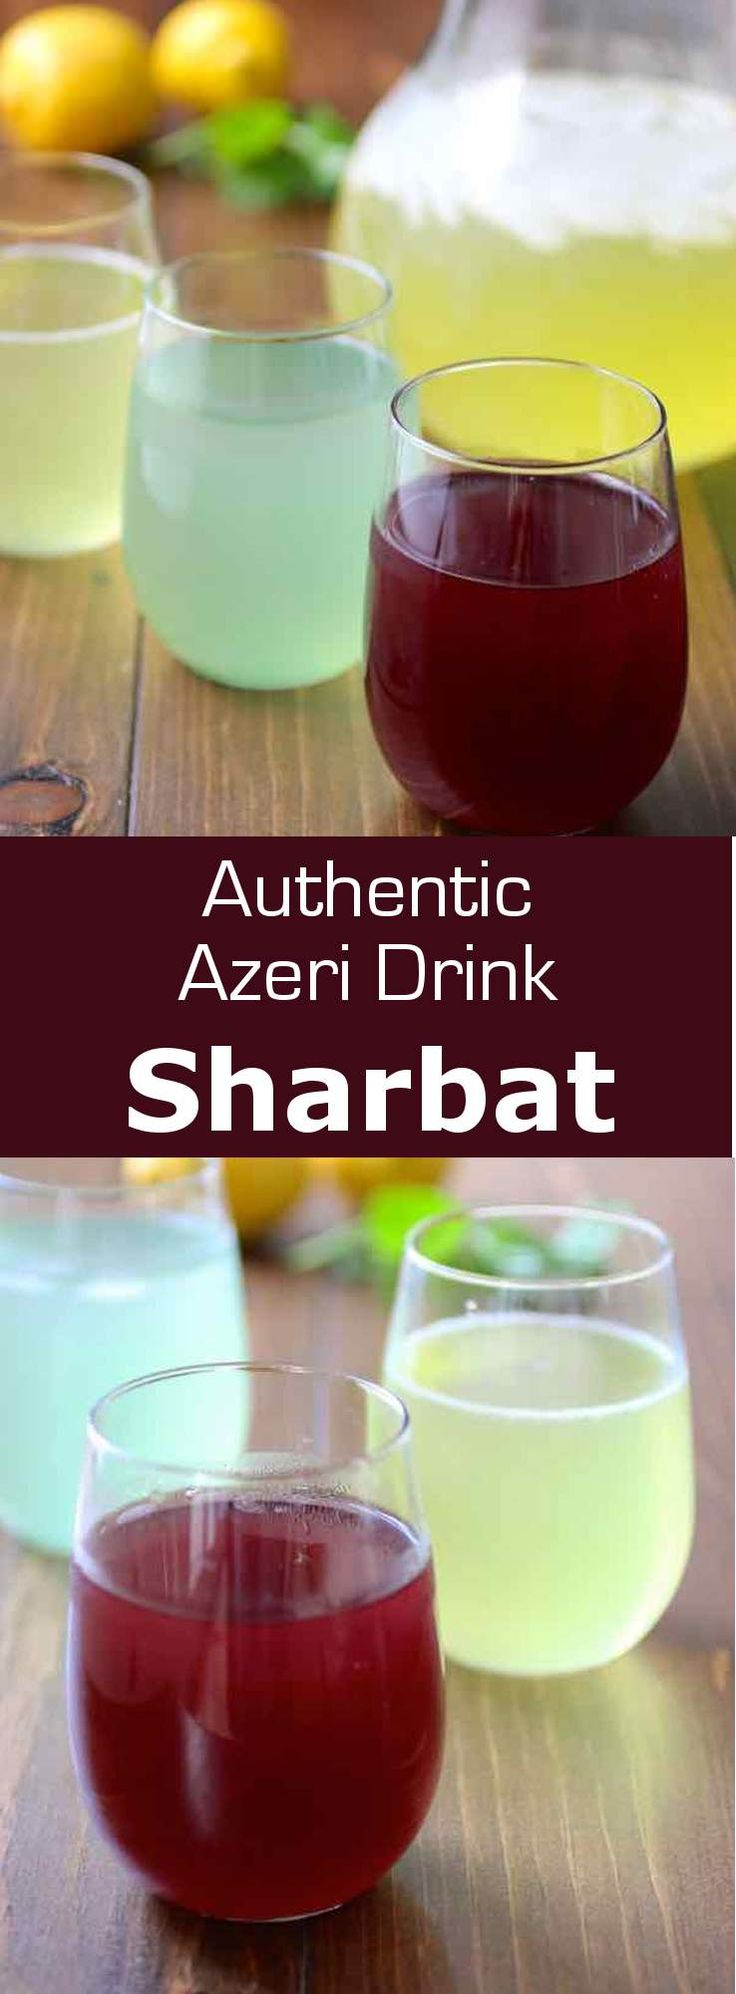 Sharbat or sherbet is a popular drink in Western and Southern Asia. It is typically prepared from fruits as well as flower petals. #azerbaijan #drink #beverage #196flavors